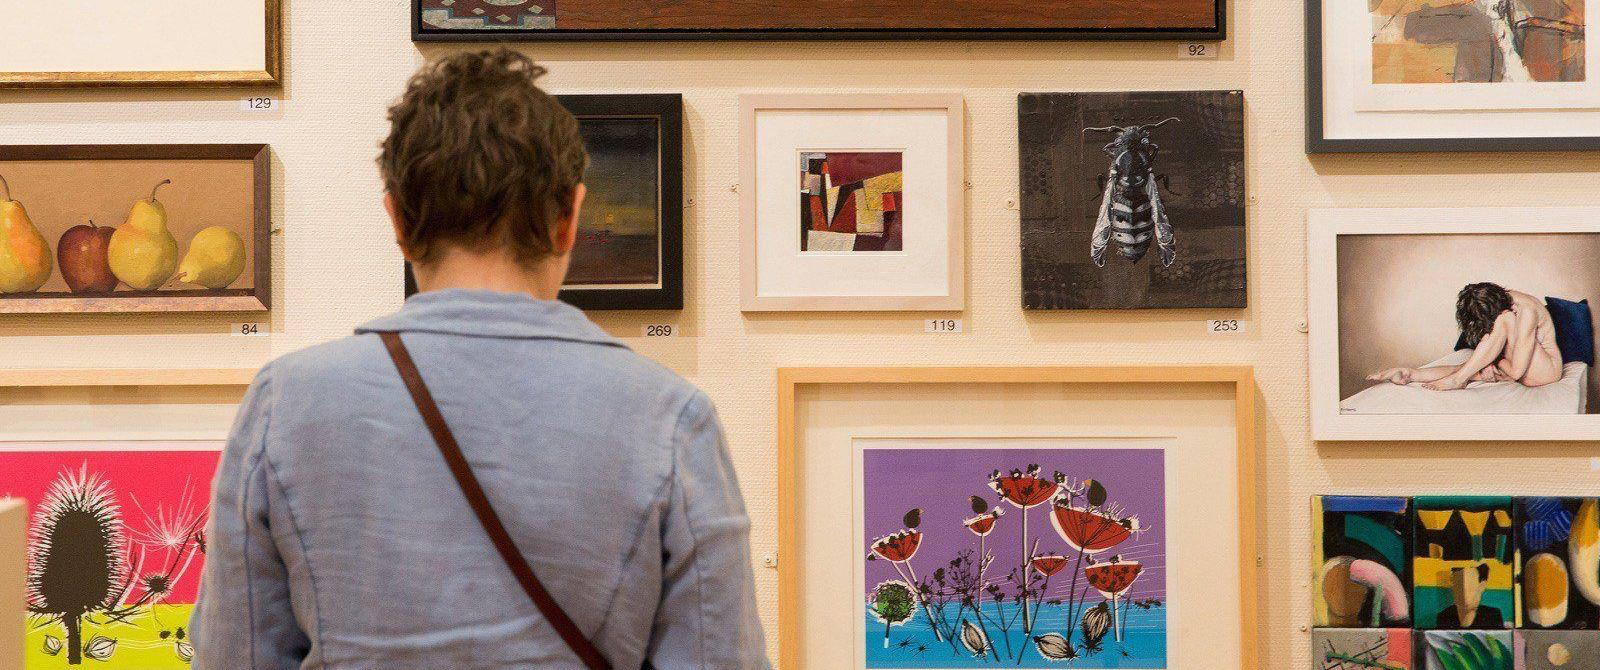 Image: Bath Society of Artists Exhibition at the Victoria Art Gallery